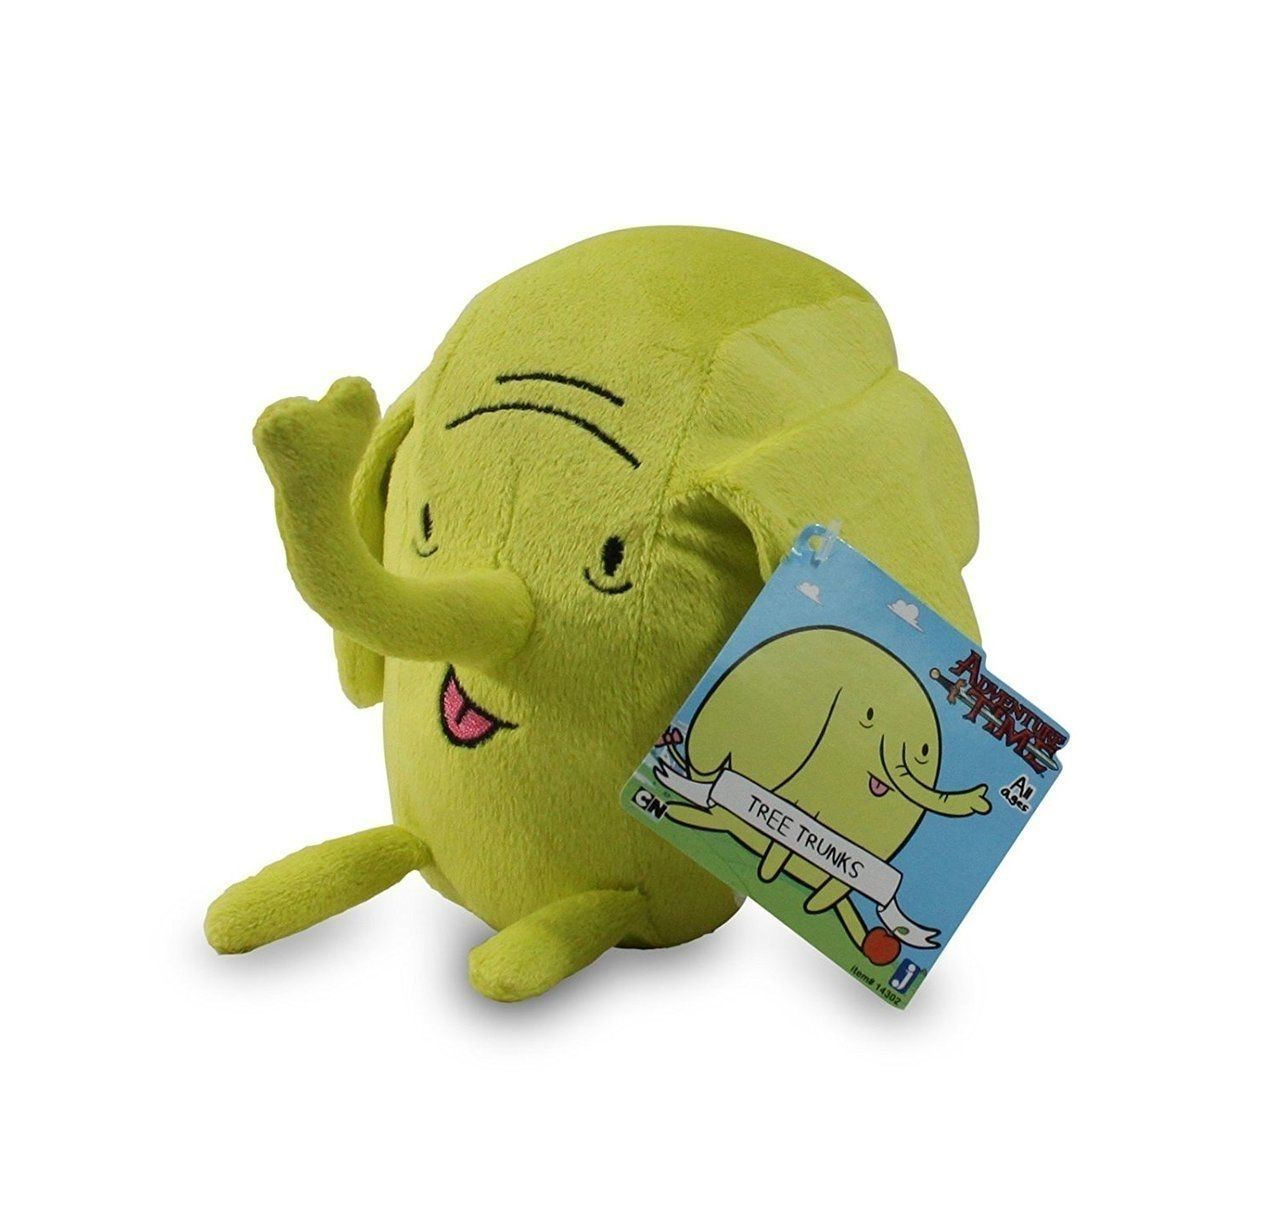 Plush Toys Adventure Time Tree Trunks 6 Inch In 2020 Tree Trunks Adventure Time Adventure Time Toys Adventure Time Plush